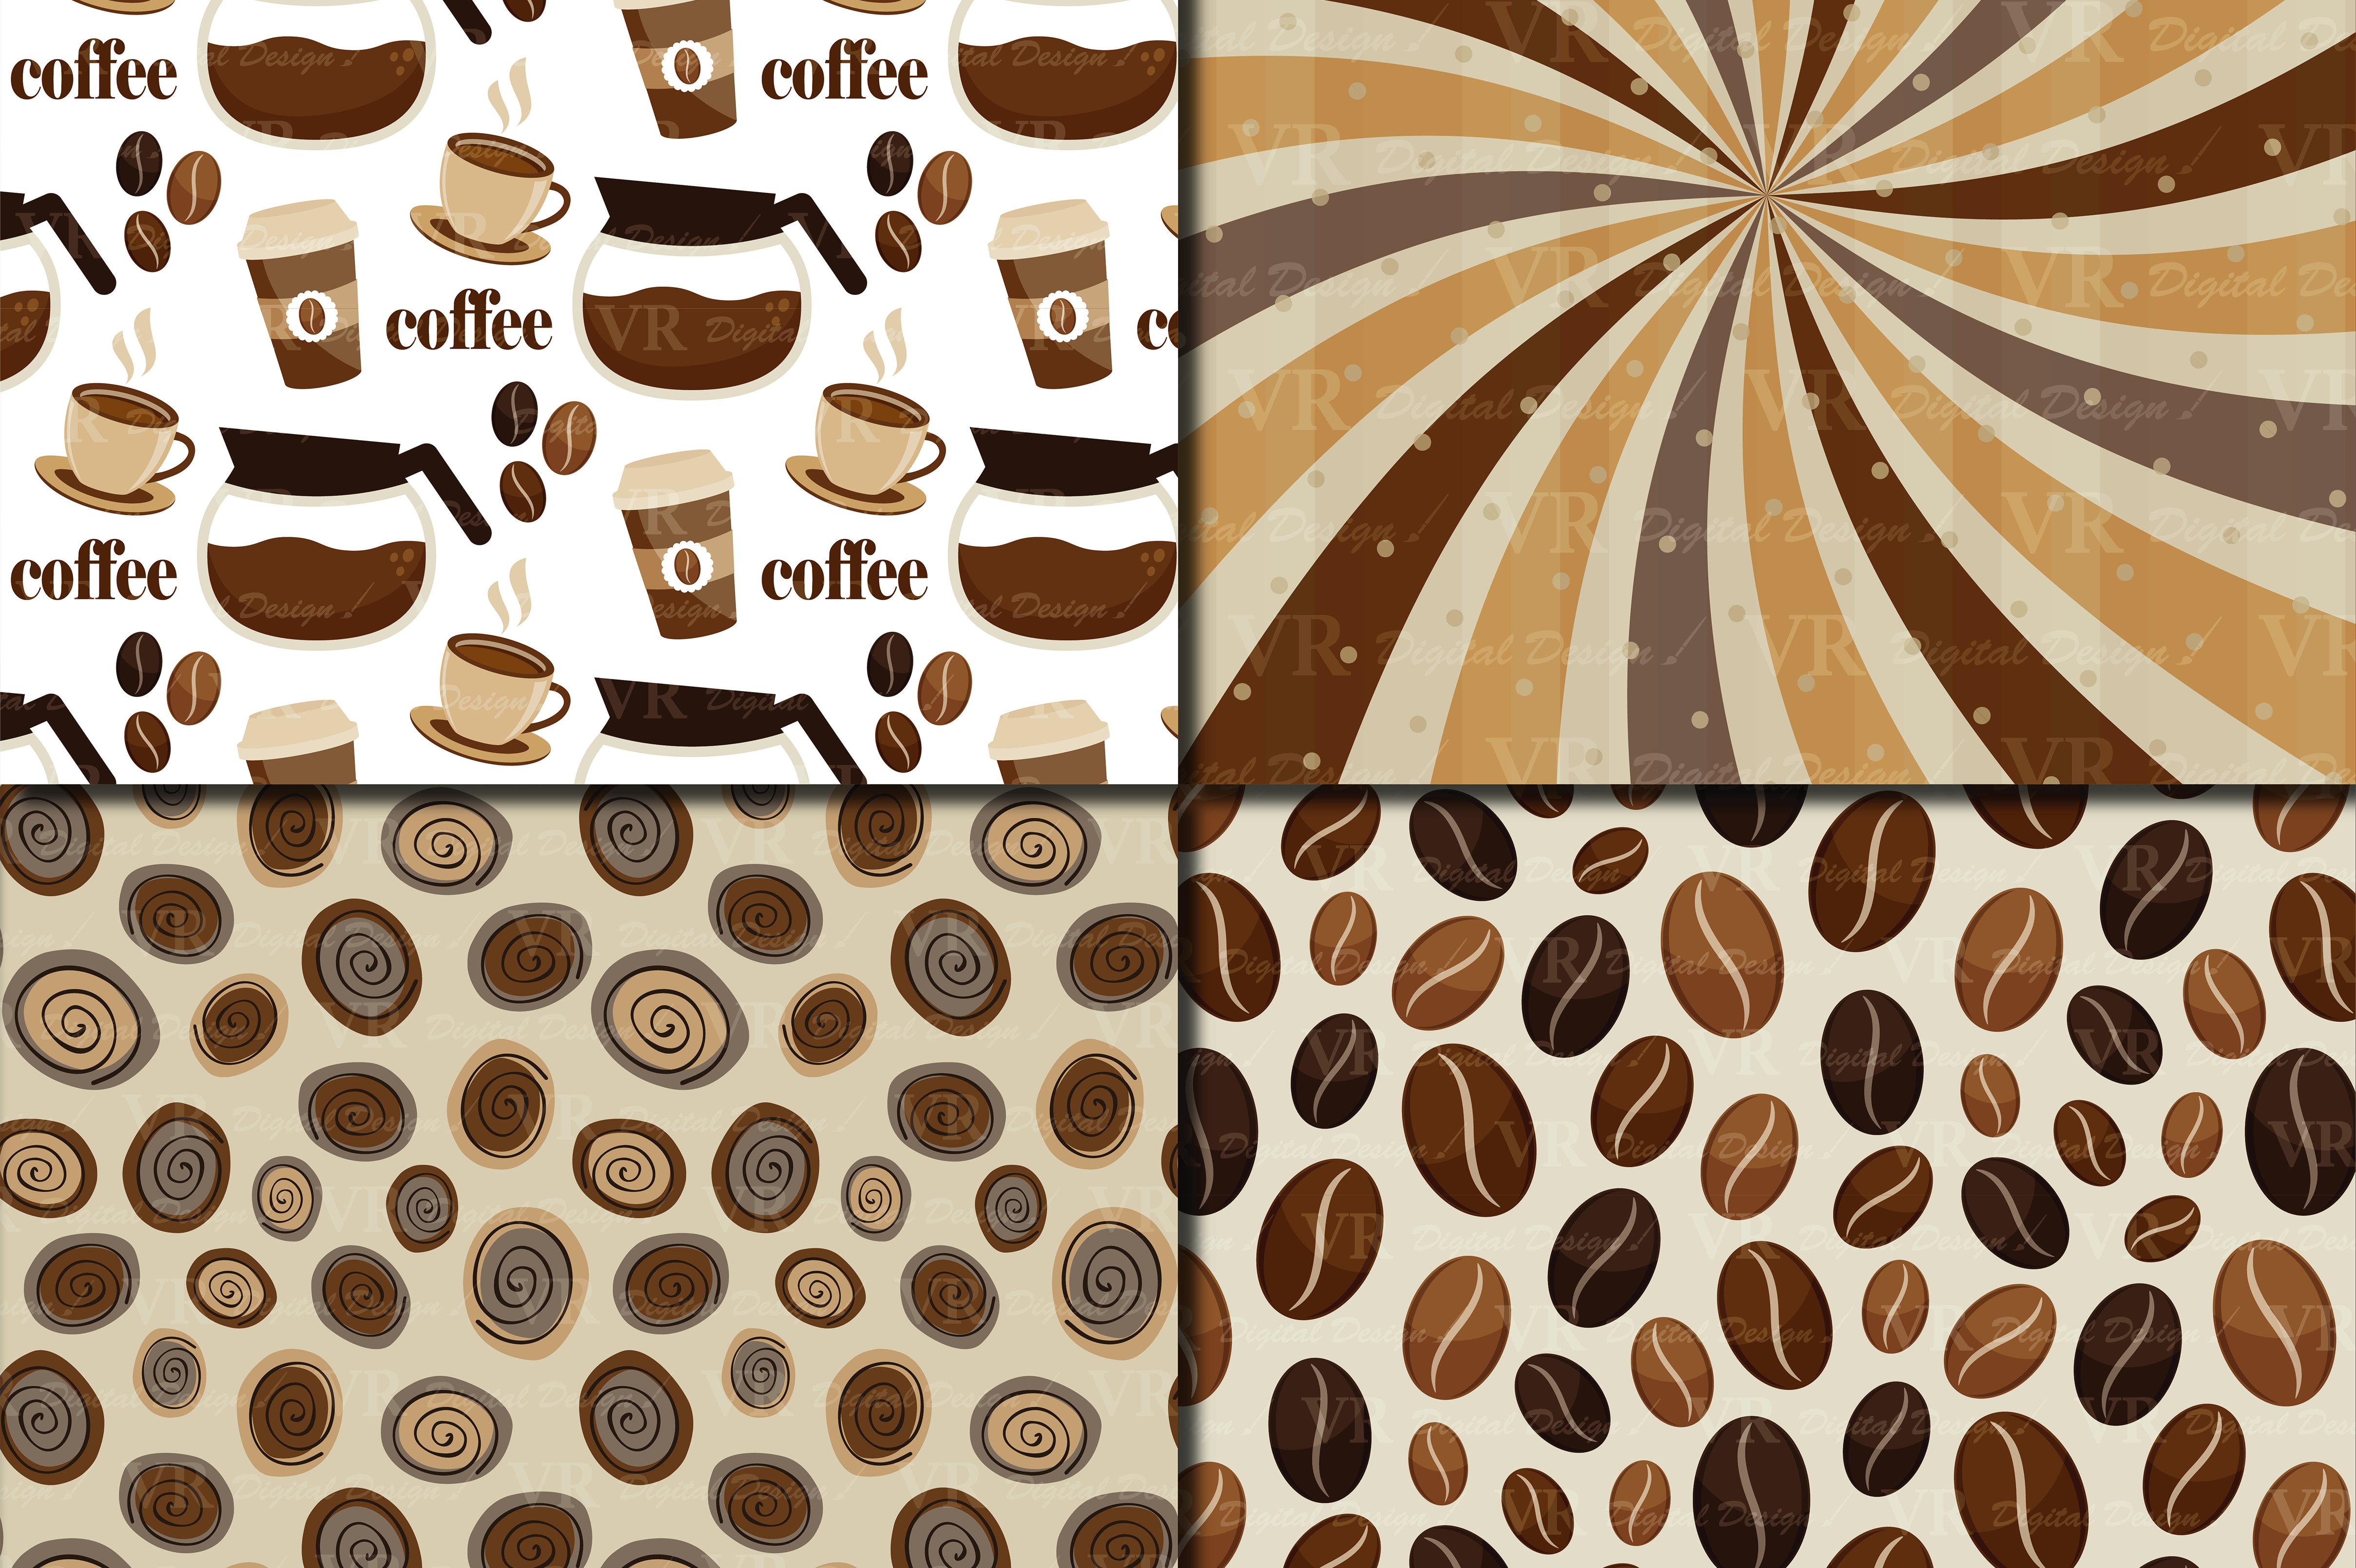 Download Free Coffee Digital Paper Pack Coffee Beans Background Brown for Cricut Explore, Silhouette and other cutting machines.